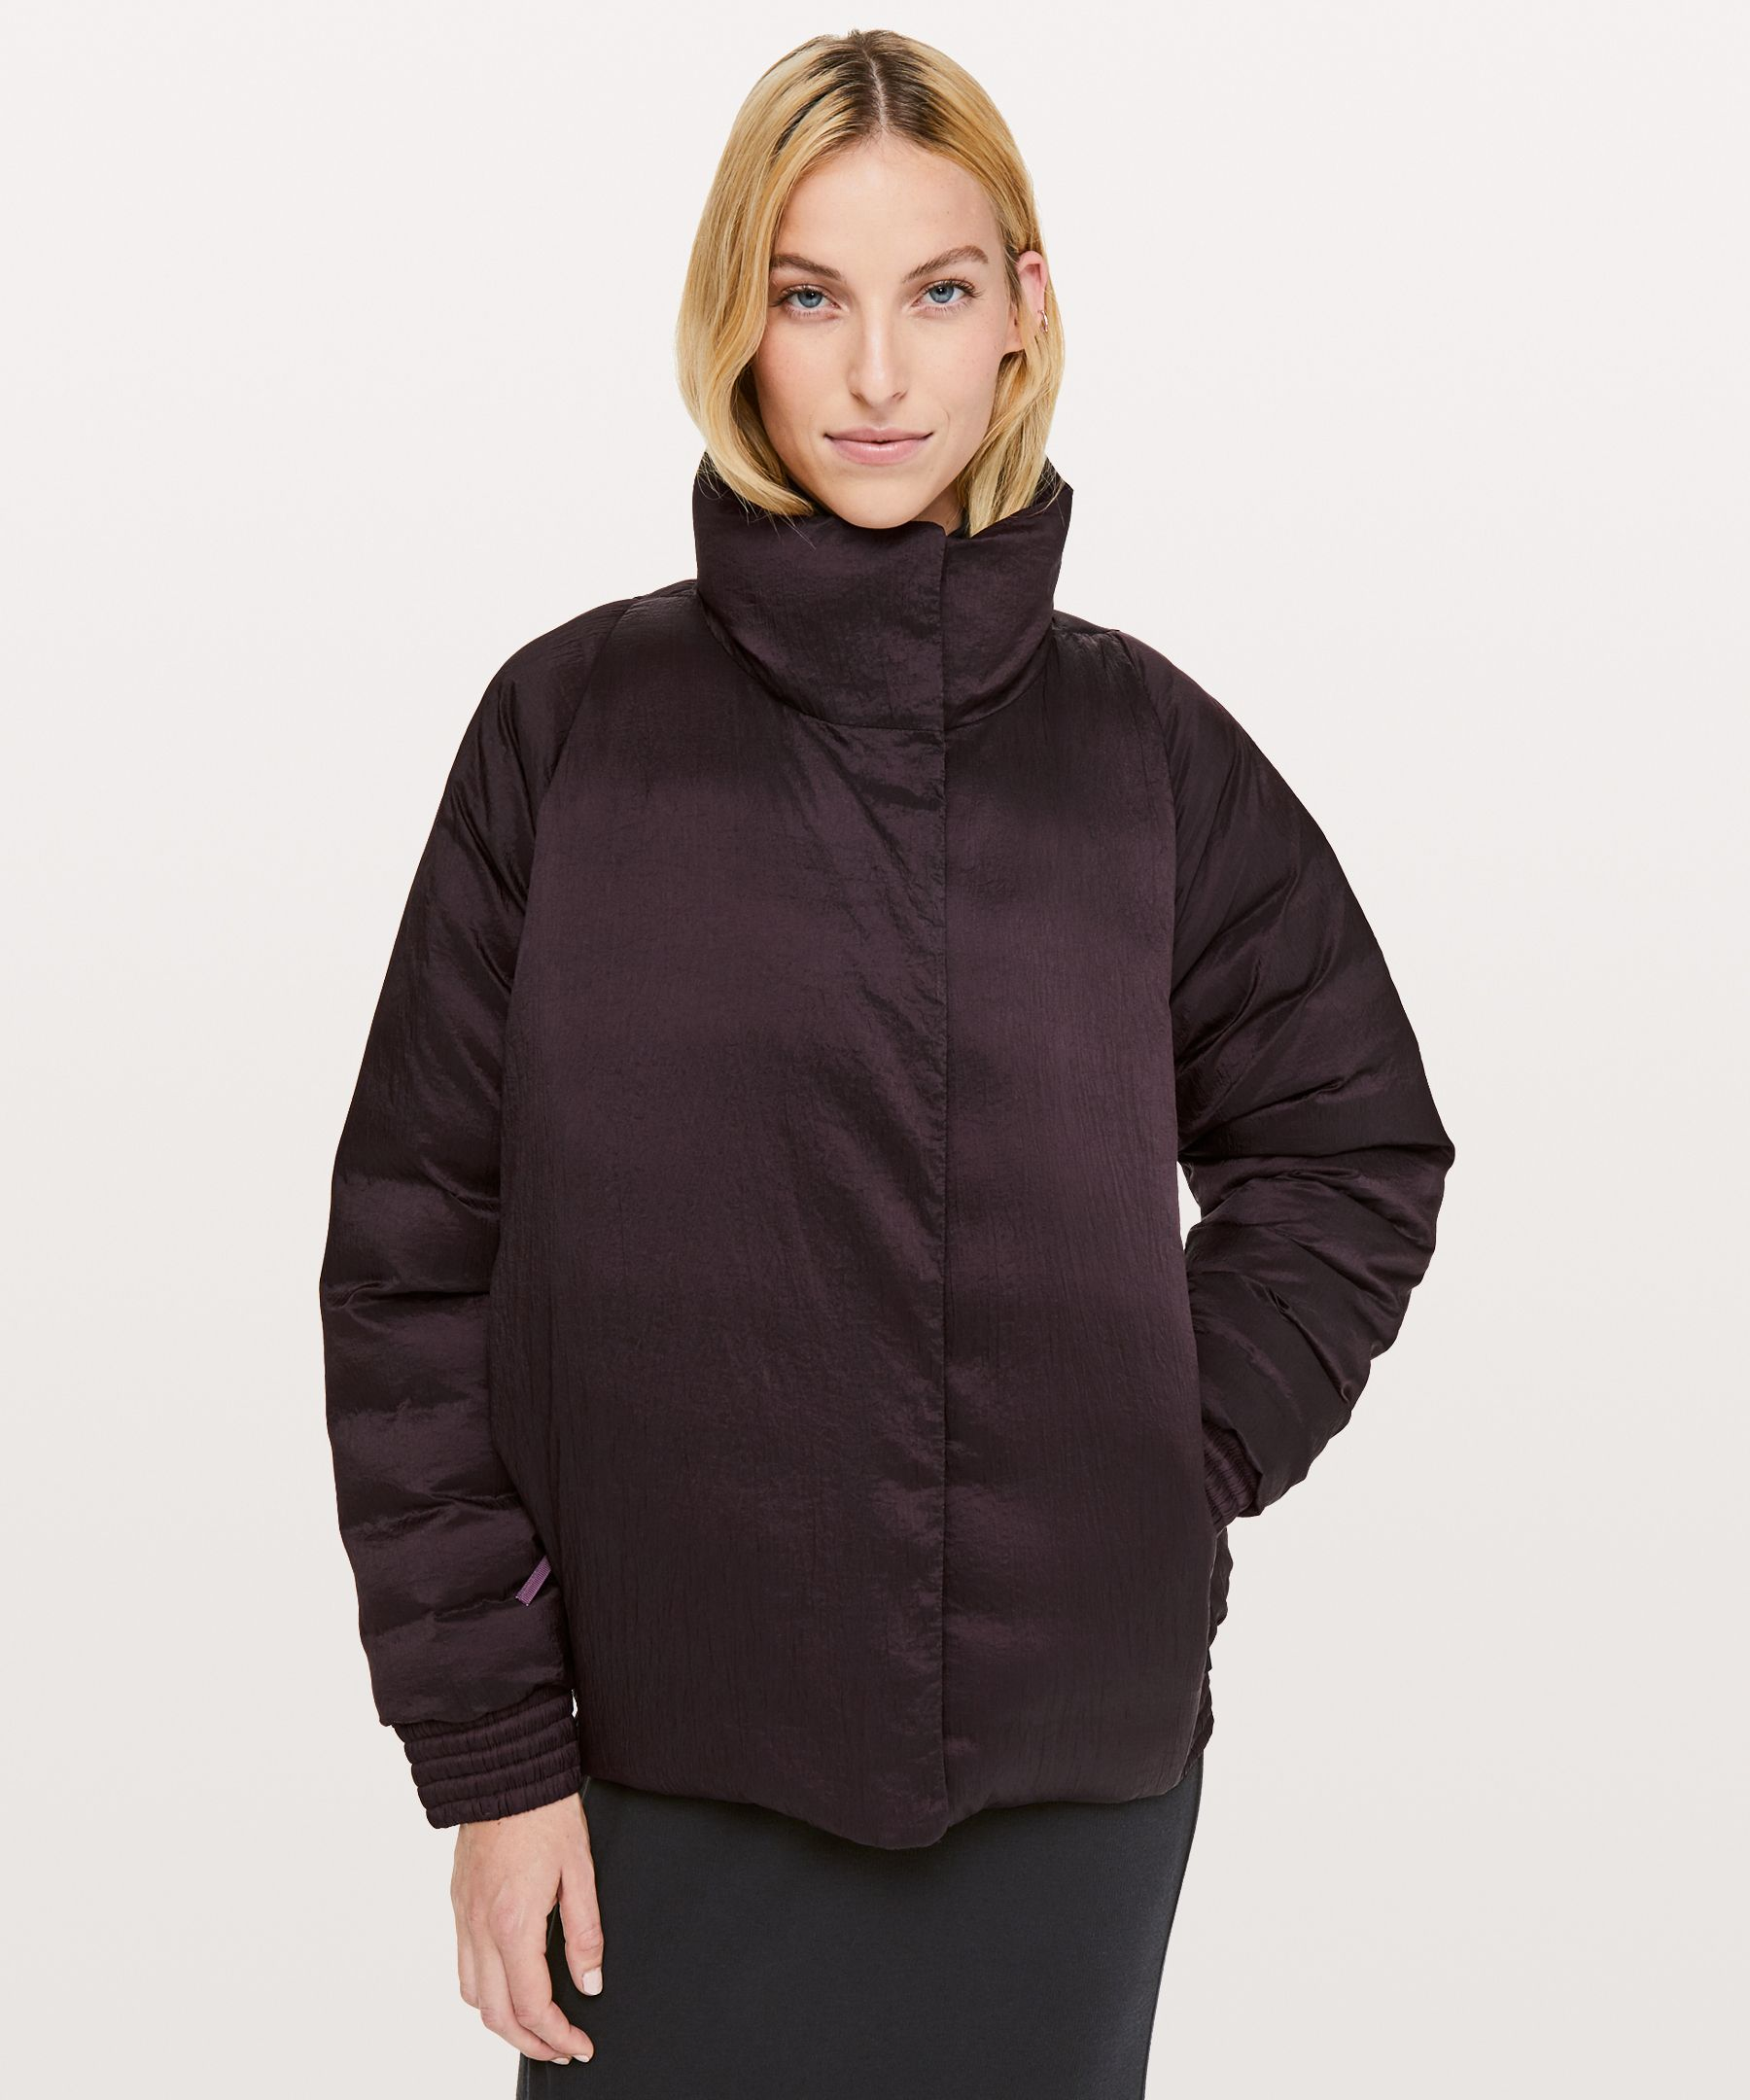 Lululemon Aurora Jacket * Lab In Purple